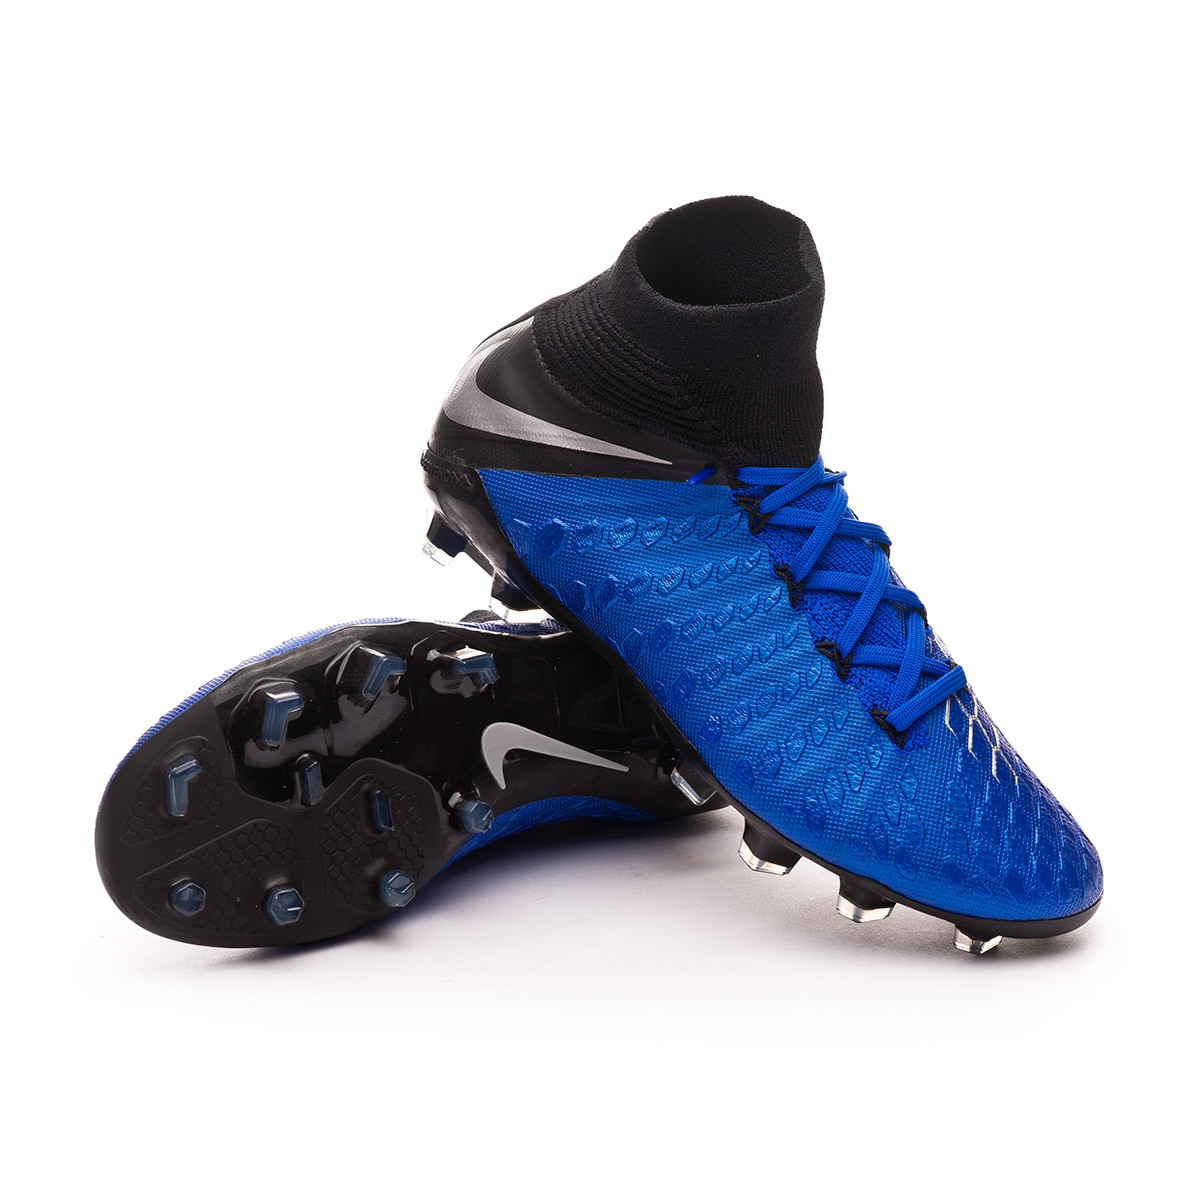 1e50d4cd3734 ... Bota Hypervenom Phantom III Elite DF FG Niño Racer blue-Metallic  silver-Black-. CATEGORY